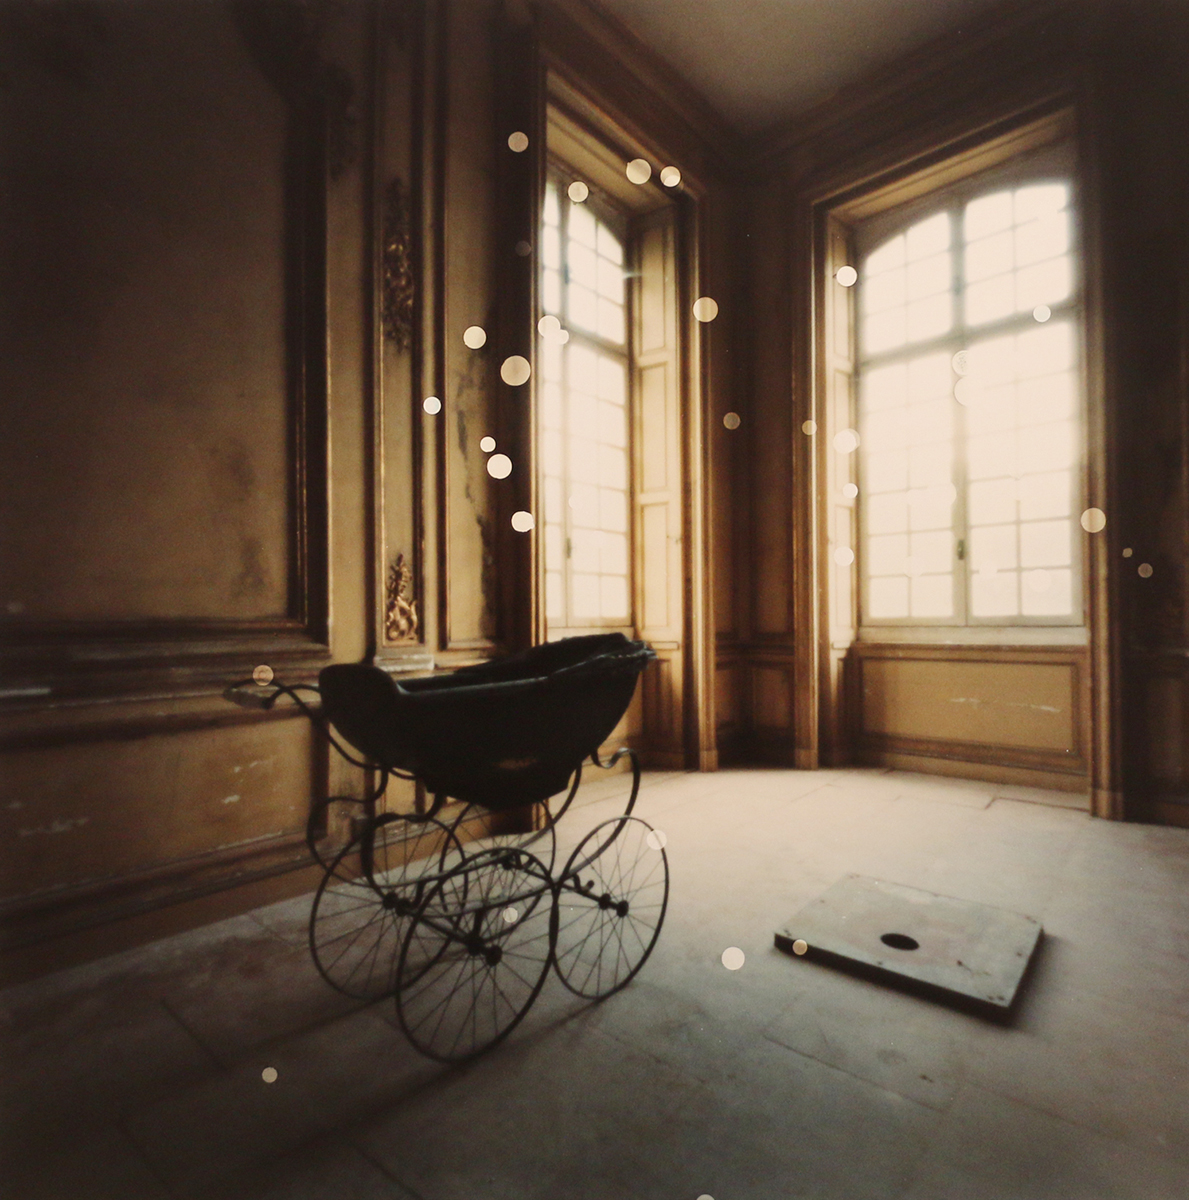 Chateau Buggy with Orbs, France (2016)